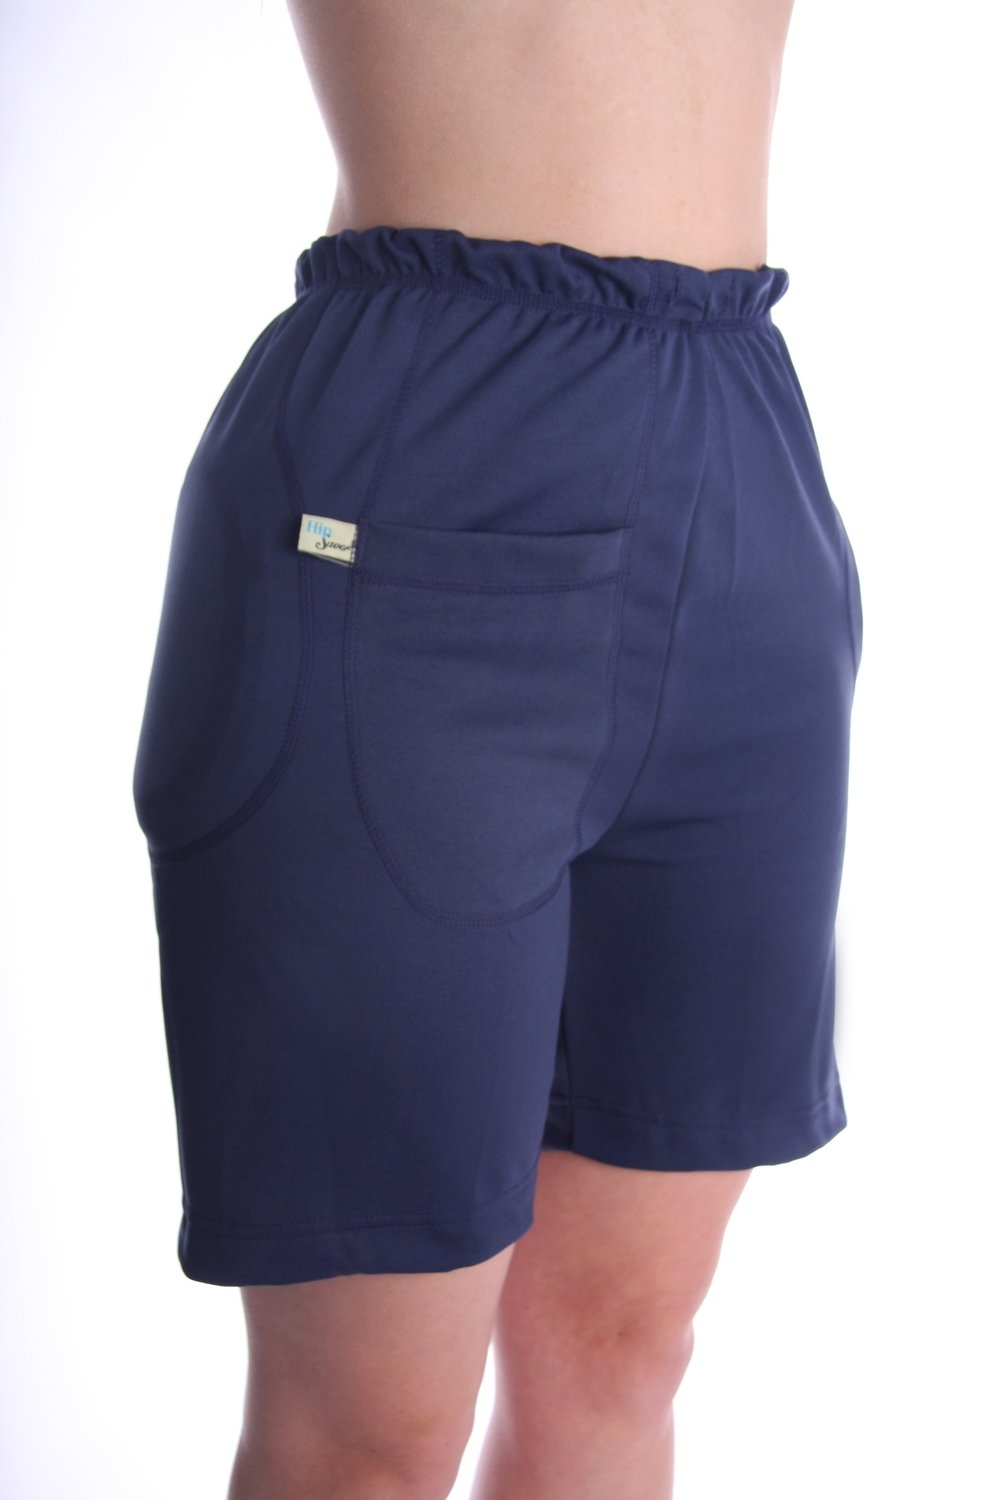 HipSaver Shorts for Hip Fracture Protection with Tailbone Protector